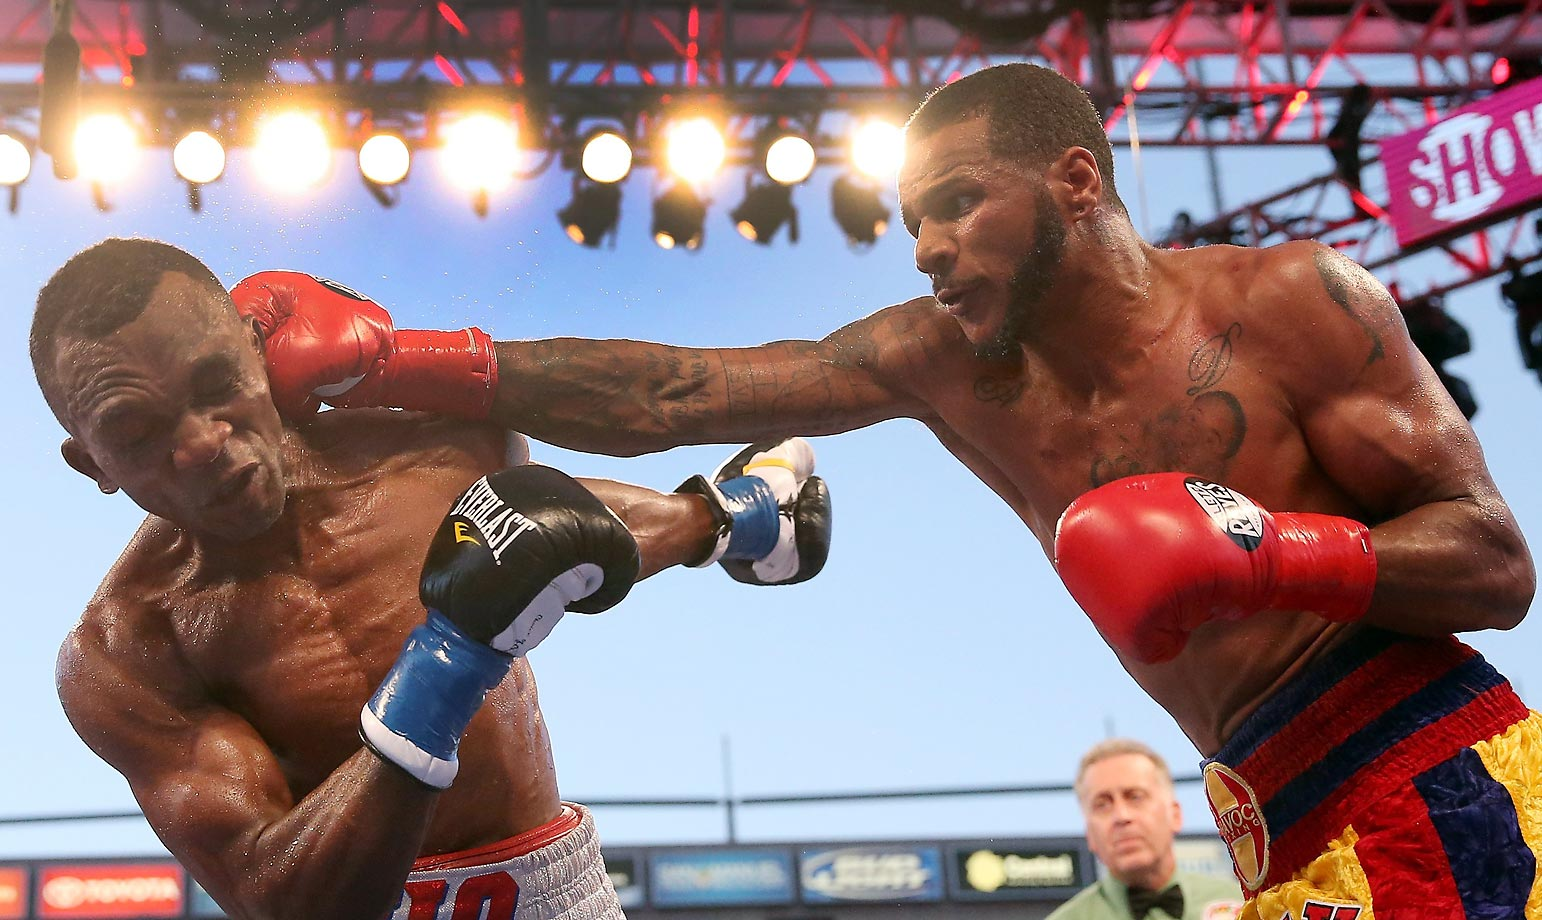 Anthony Dirrell lands a punch on Sakio Bika in their WBC super middleweight world championship bout. Dirrell won by unanimous decision.